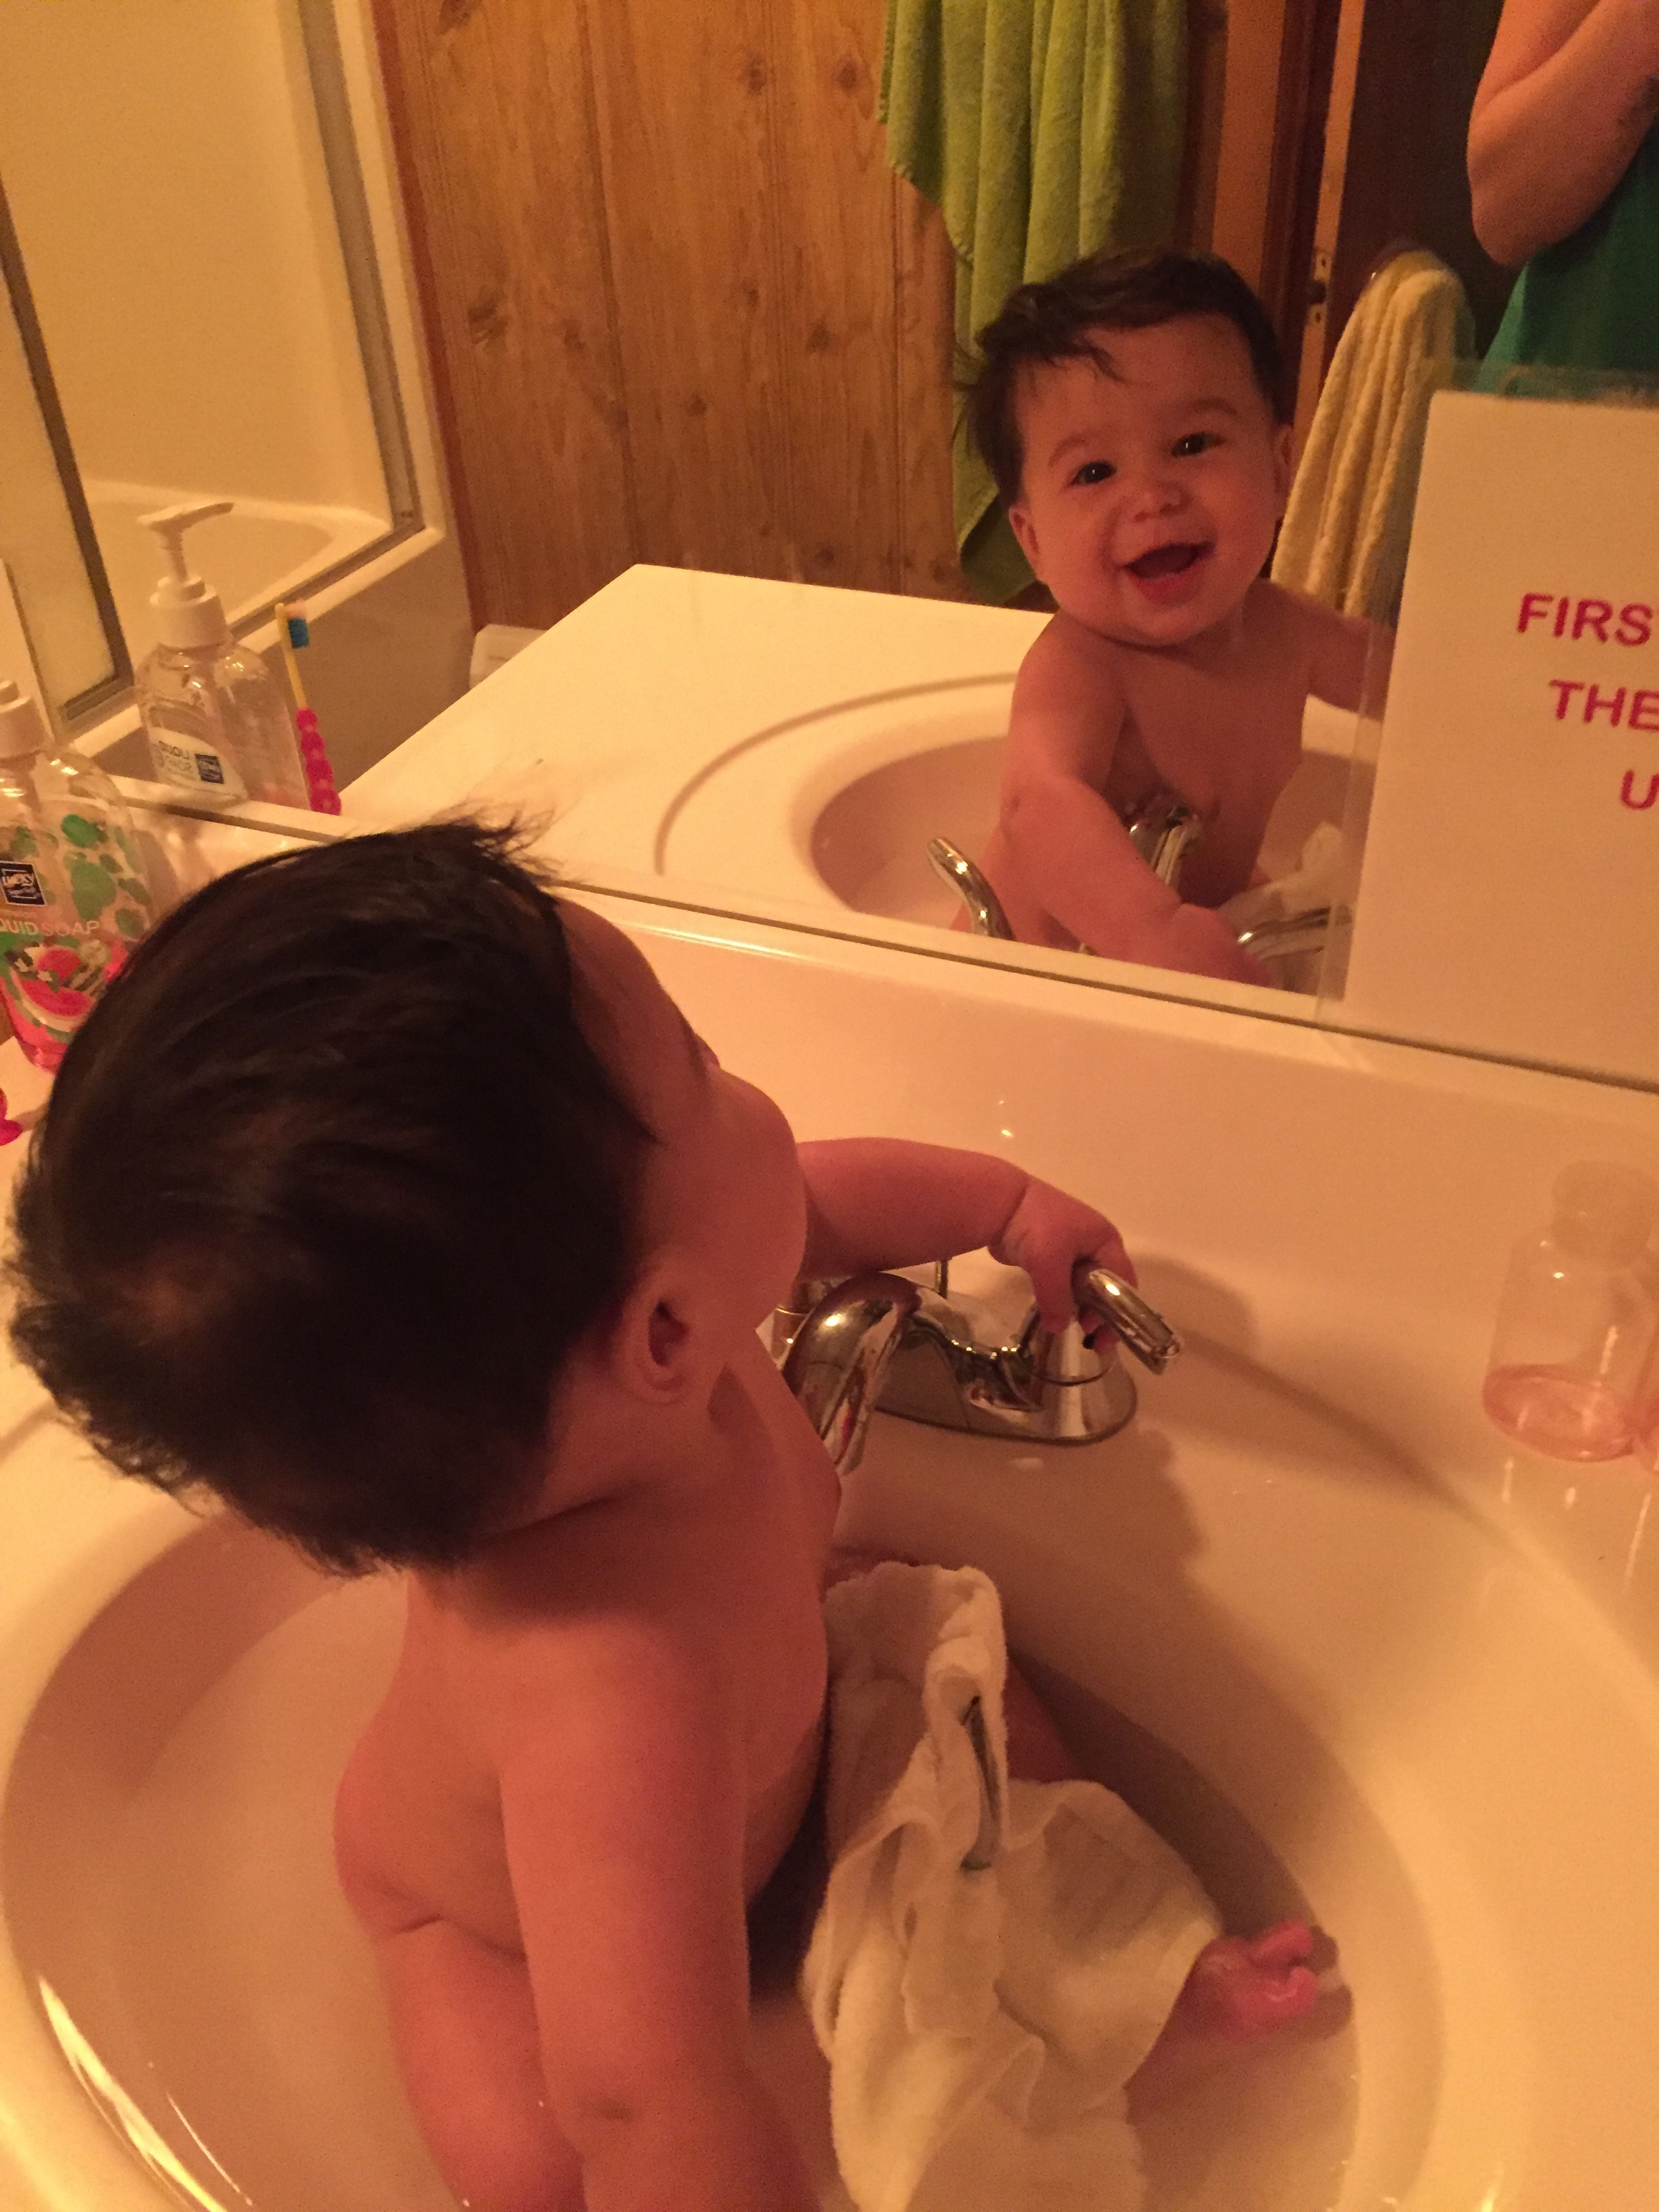 Baby in the sink!